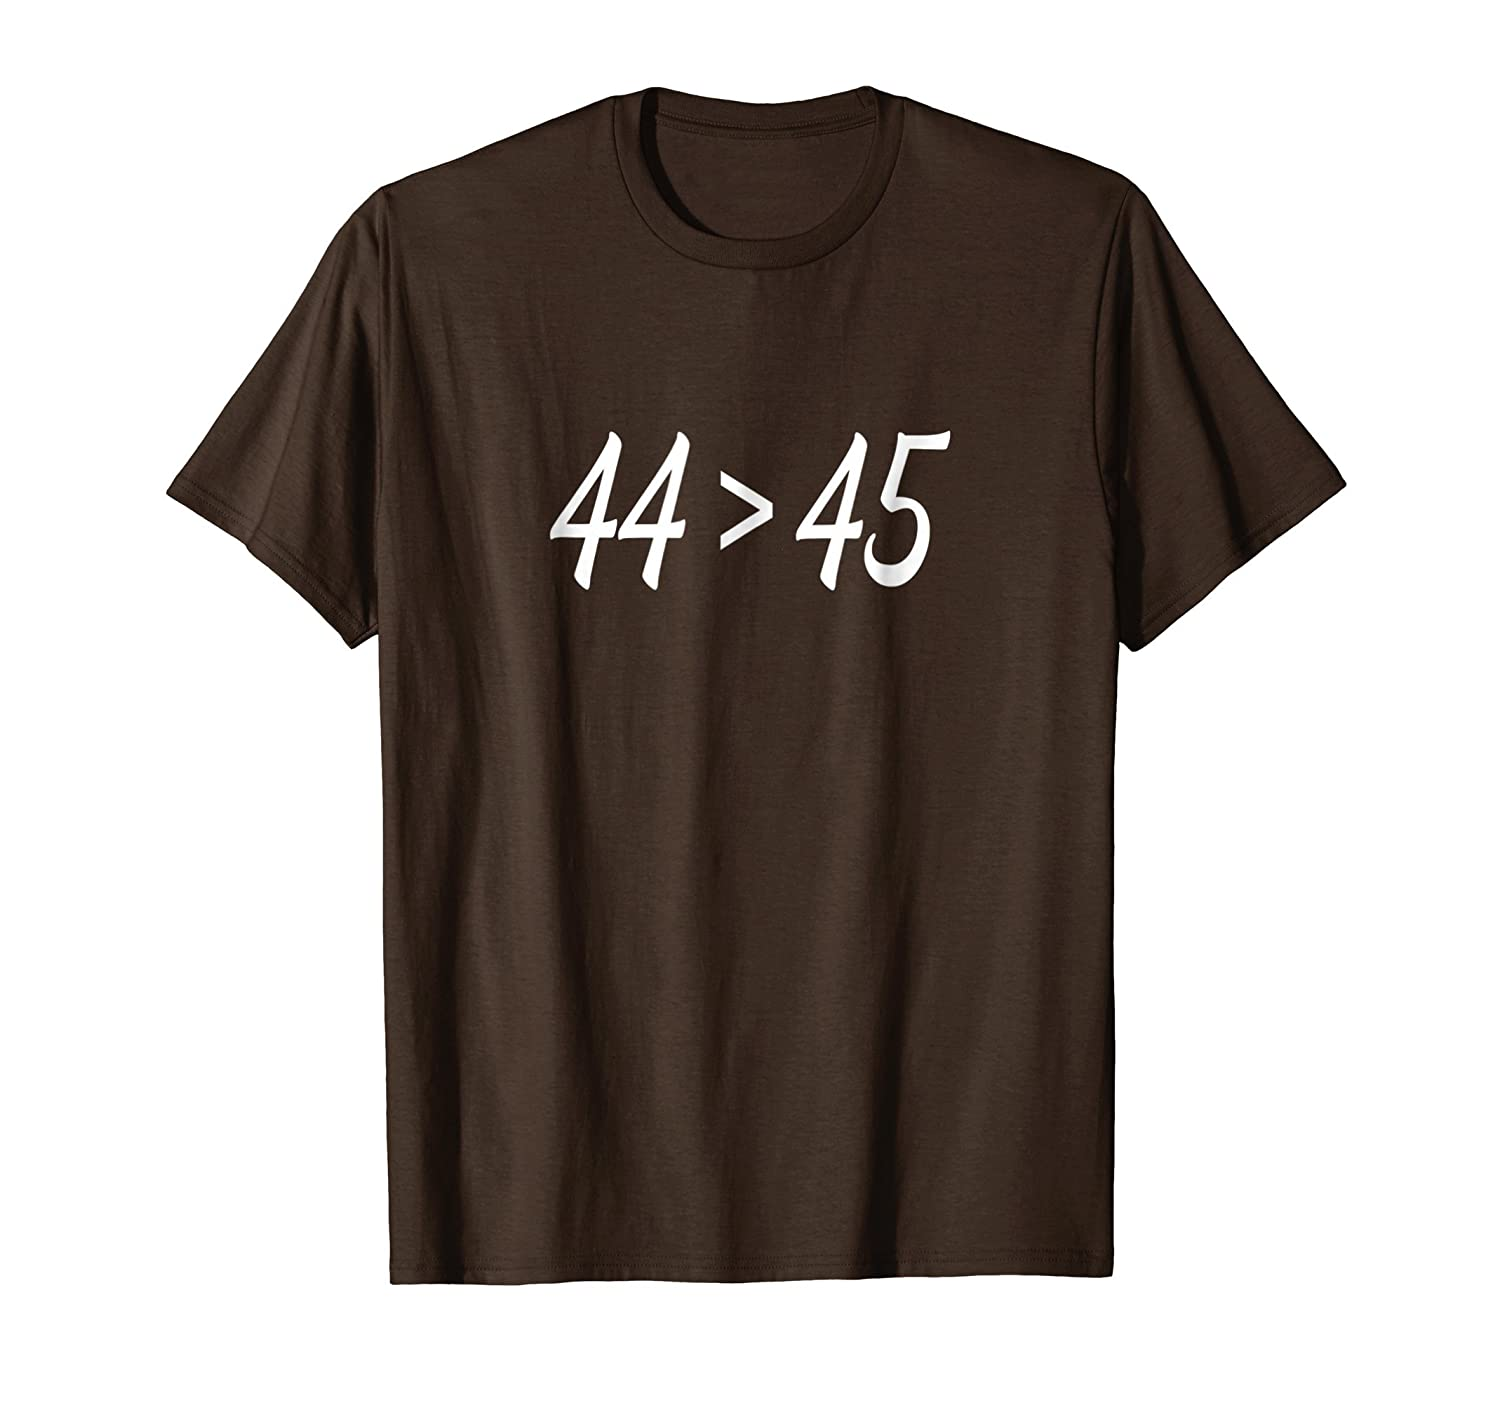 44 > 45, The 44th President is Greater Than The 45th - Shirt-mt